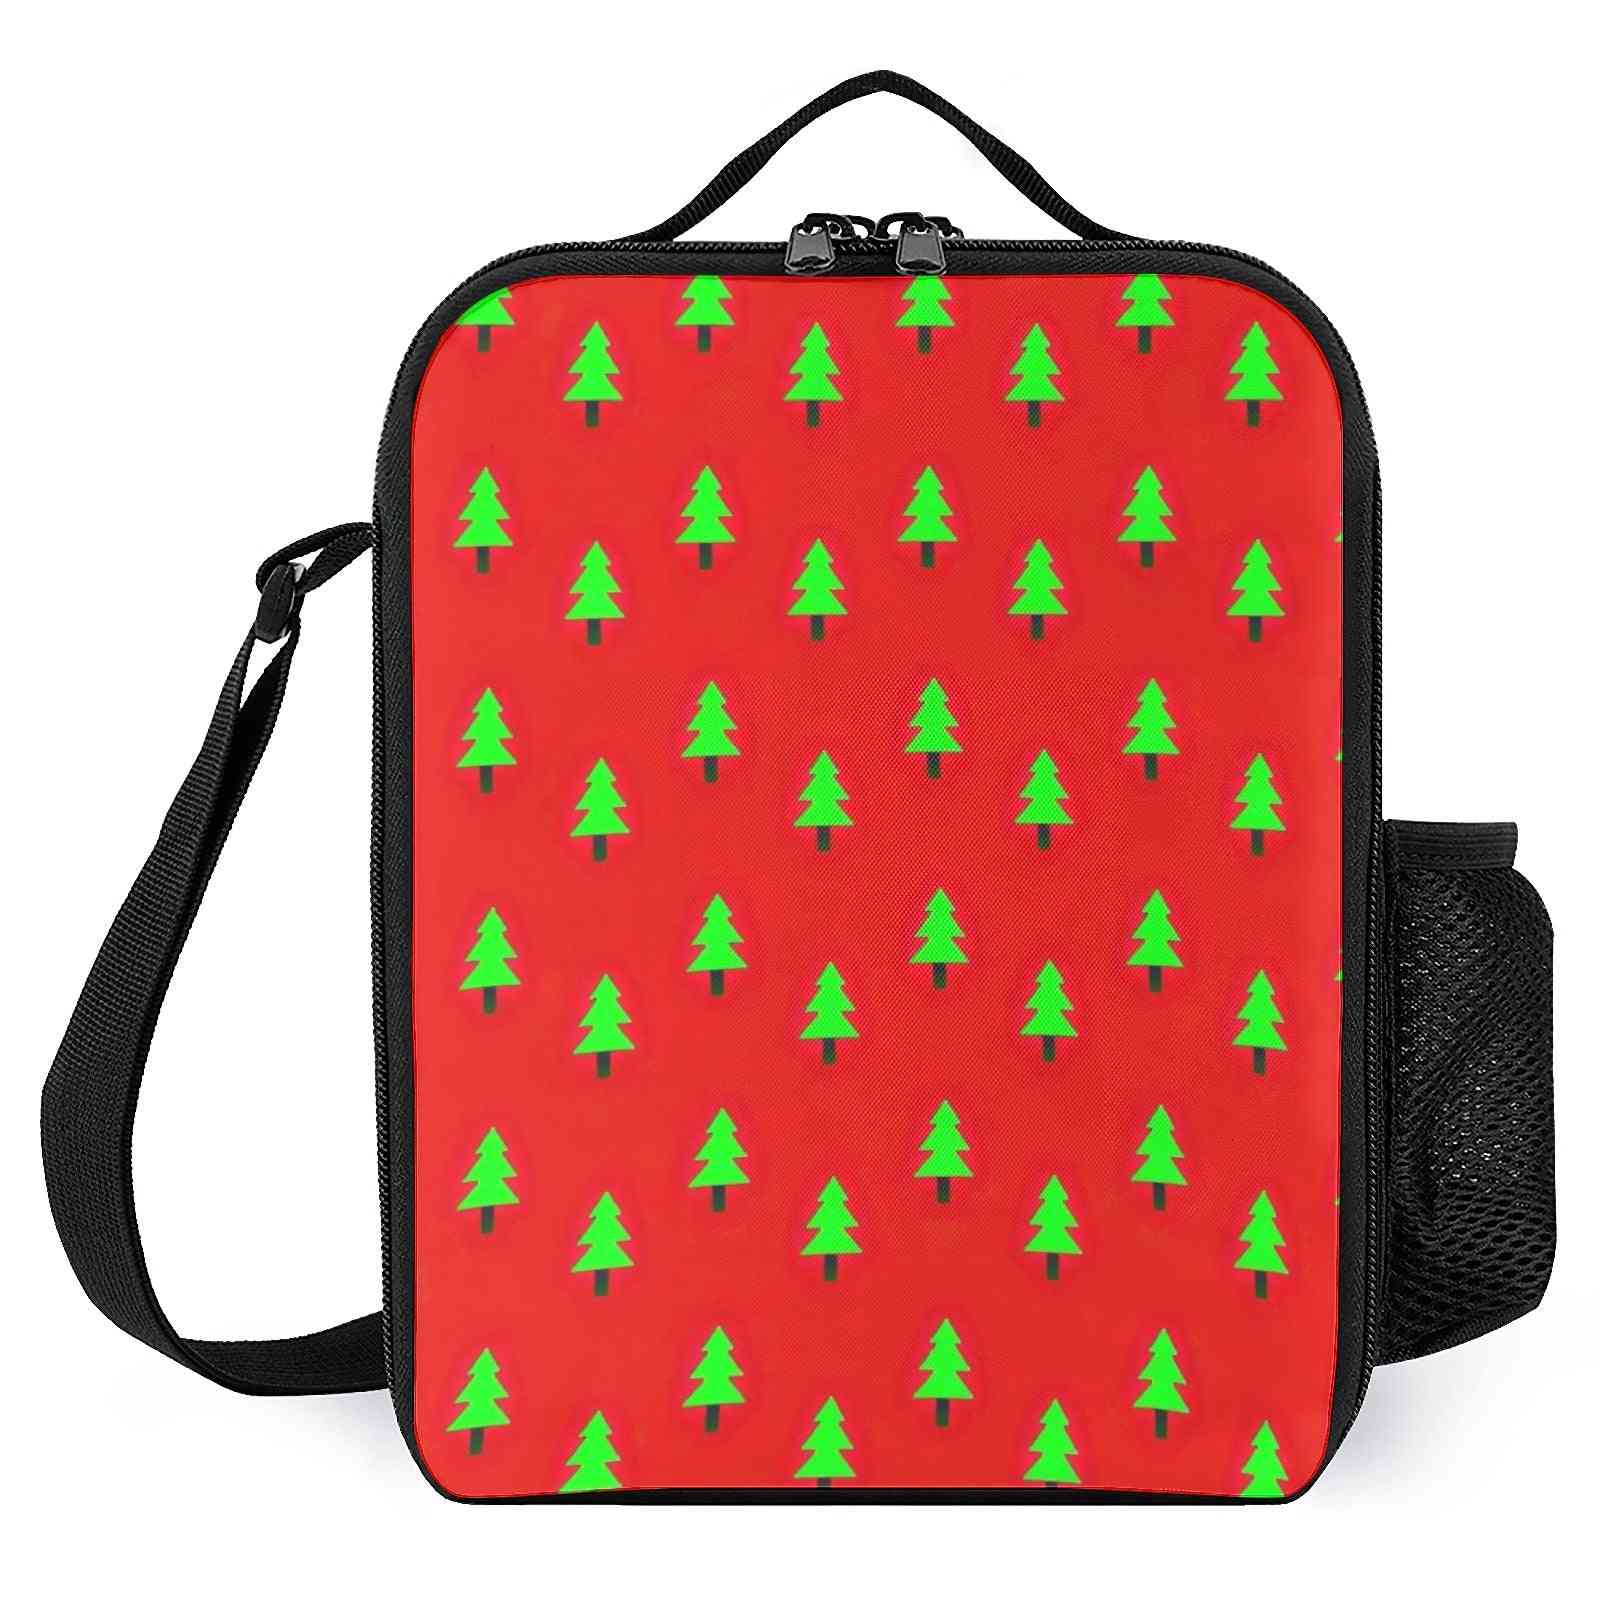 Christmas Tree Printed-reusable Insulated Cooler Boxes For Kids